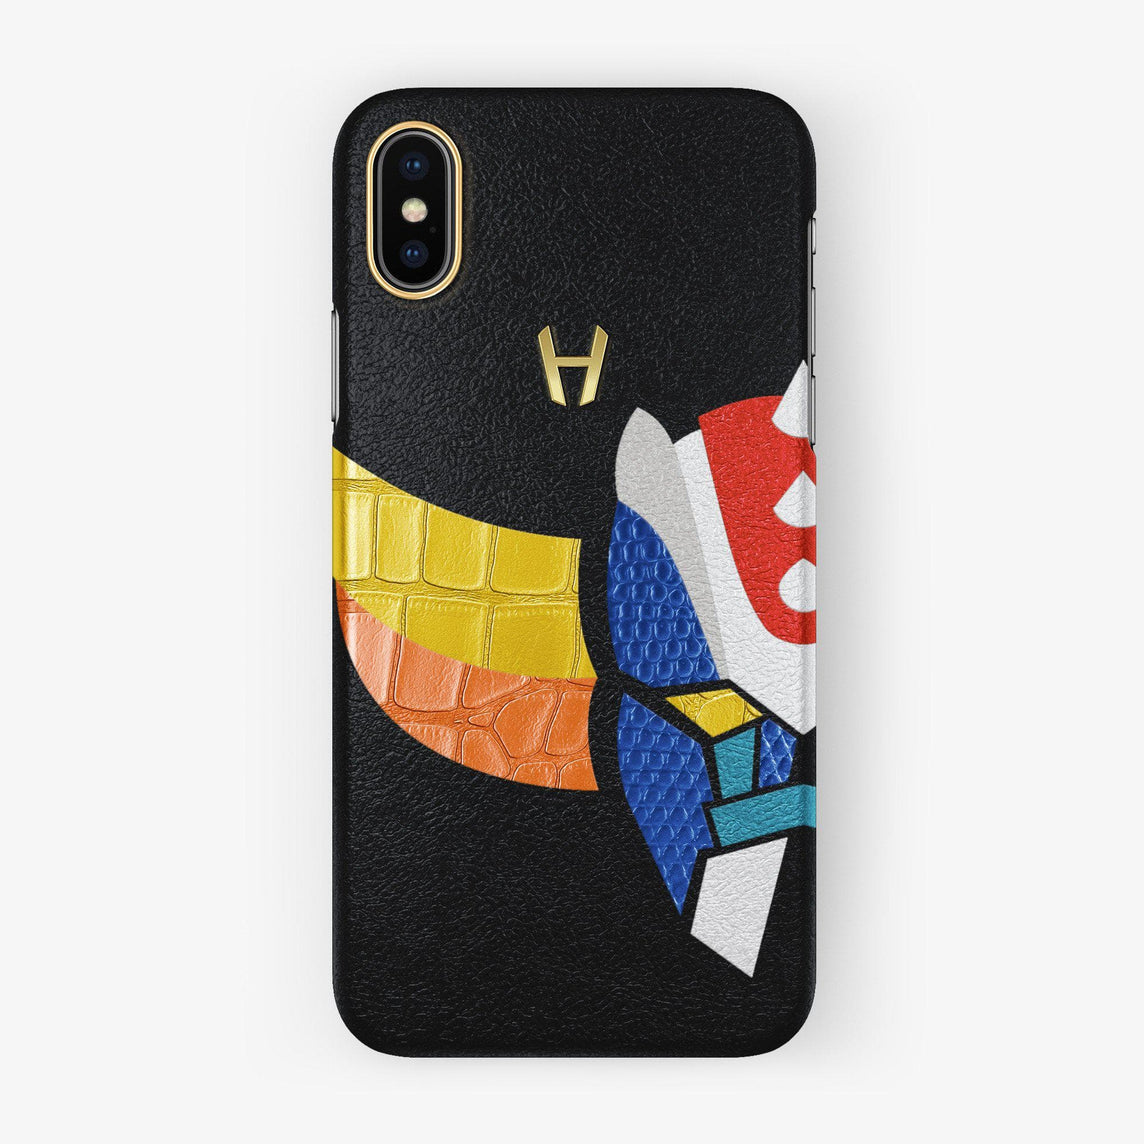 Hadoro Grendizer Alligator / Lizard / Calfskin iPhone X/Xs Case | Black Calfskin - Grendizer C1 Default